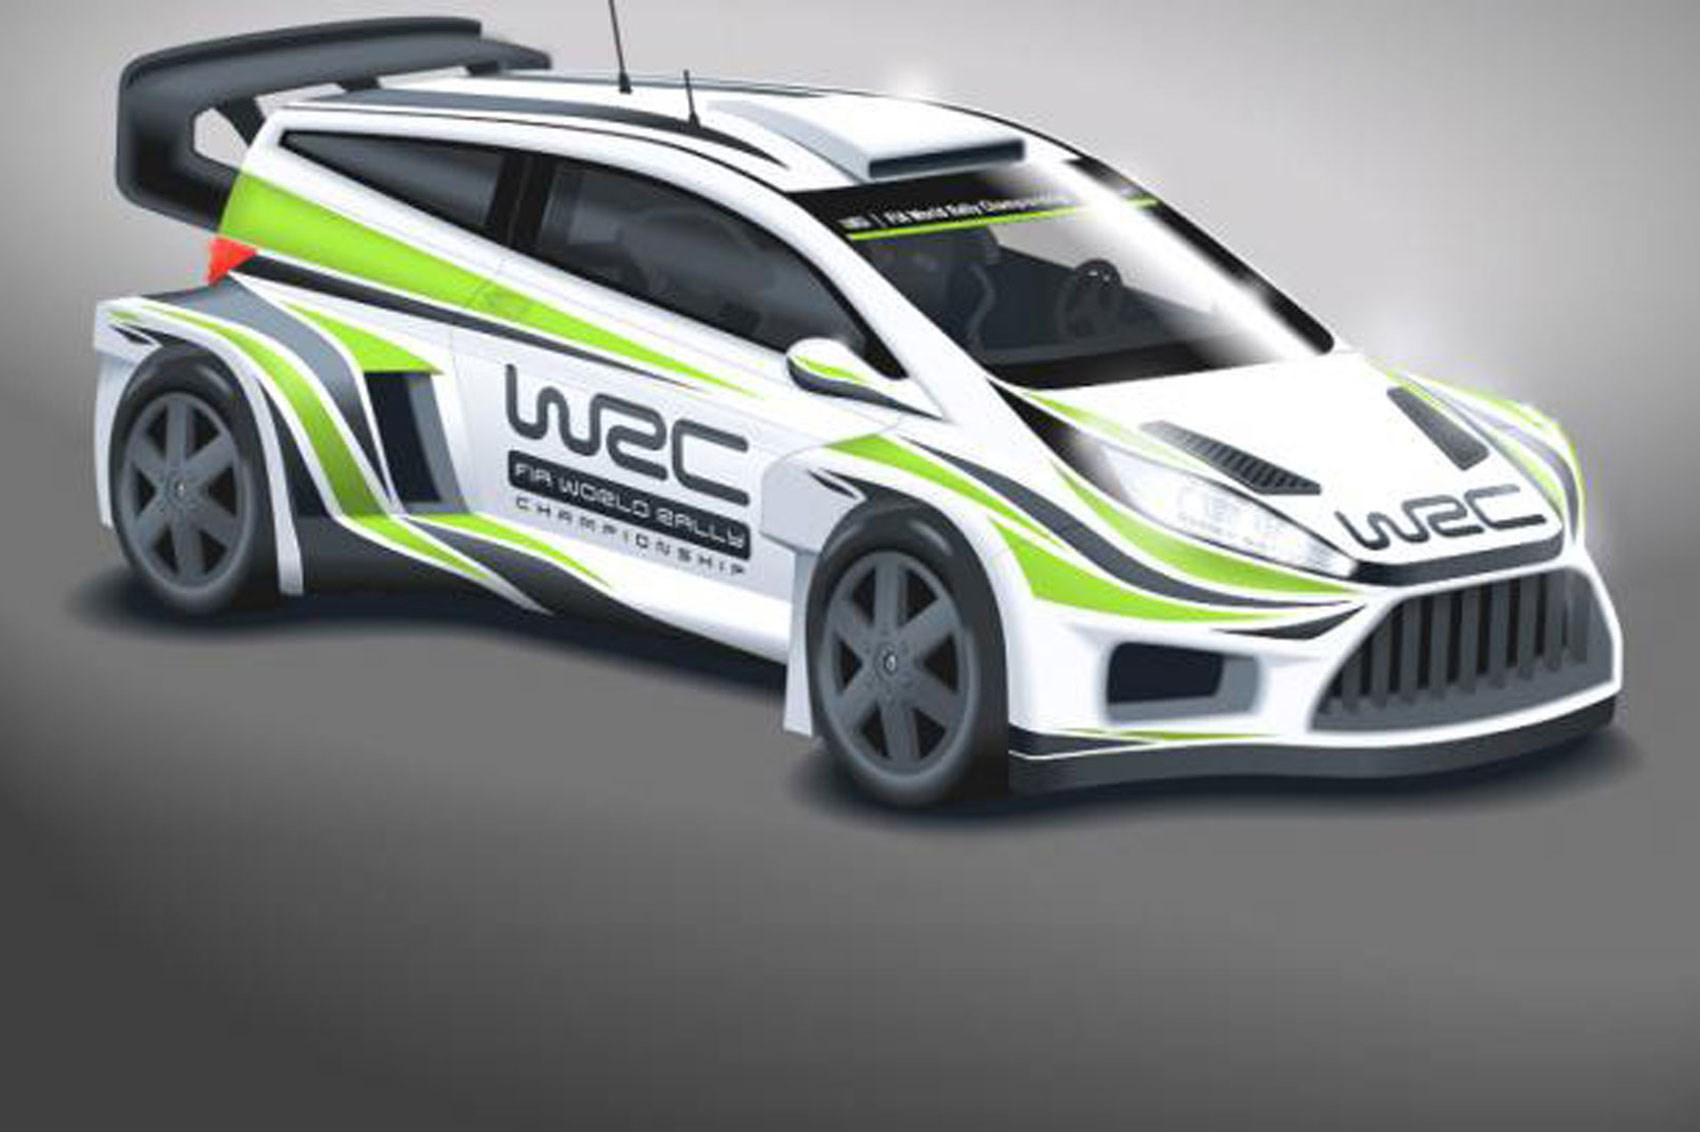 Ultrablogus  Seductive Wild New Look For Wrc Cars In  By Car Magazine With Exciting Wrc Cars Will Get Wider Bodies Bigger Wings And More Power For  With Amusing Mini Morris Interior Also Skyline Gtr R Interior In Addition Bmw Interior Photos And  Hyundai Genesis Coupe Interior As Well As Lexus  Interior Additionally Getz Interior From Carmagazinecouk With Ultrablogus  Exciting Wild New Look For Wrc Cars In  By Car Magazine With Amusing Wrc Cars Will Get Wider Bodies Bigger Wings And More Power For  And Seductive Mini Morris Interior Also Skyline Gtr R Interior In Addition Bmw Interior Photos From Carmagazinecouk